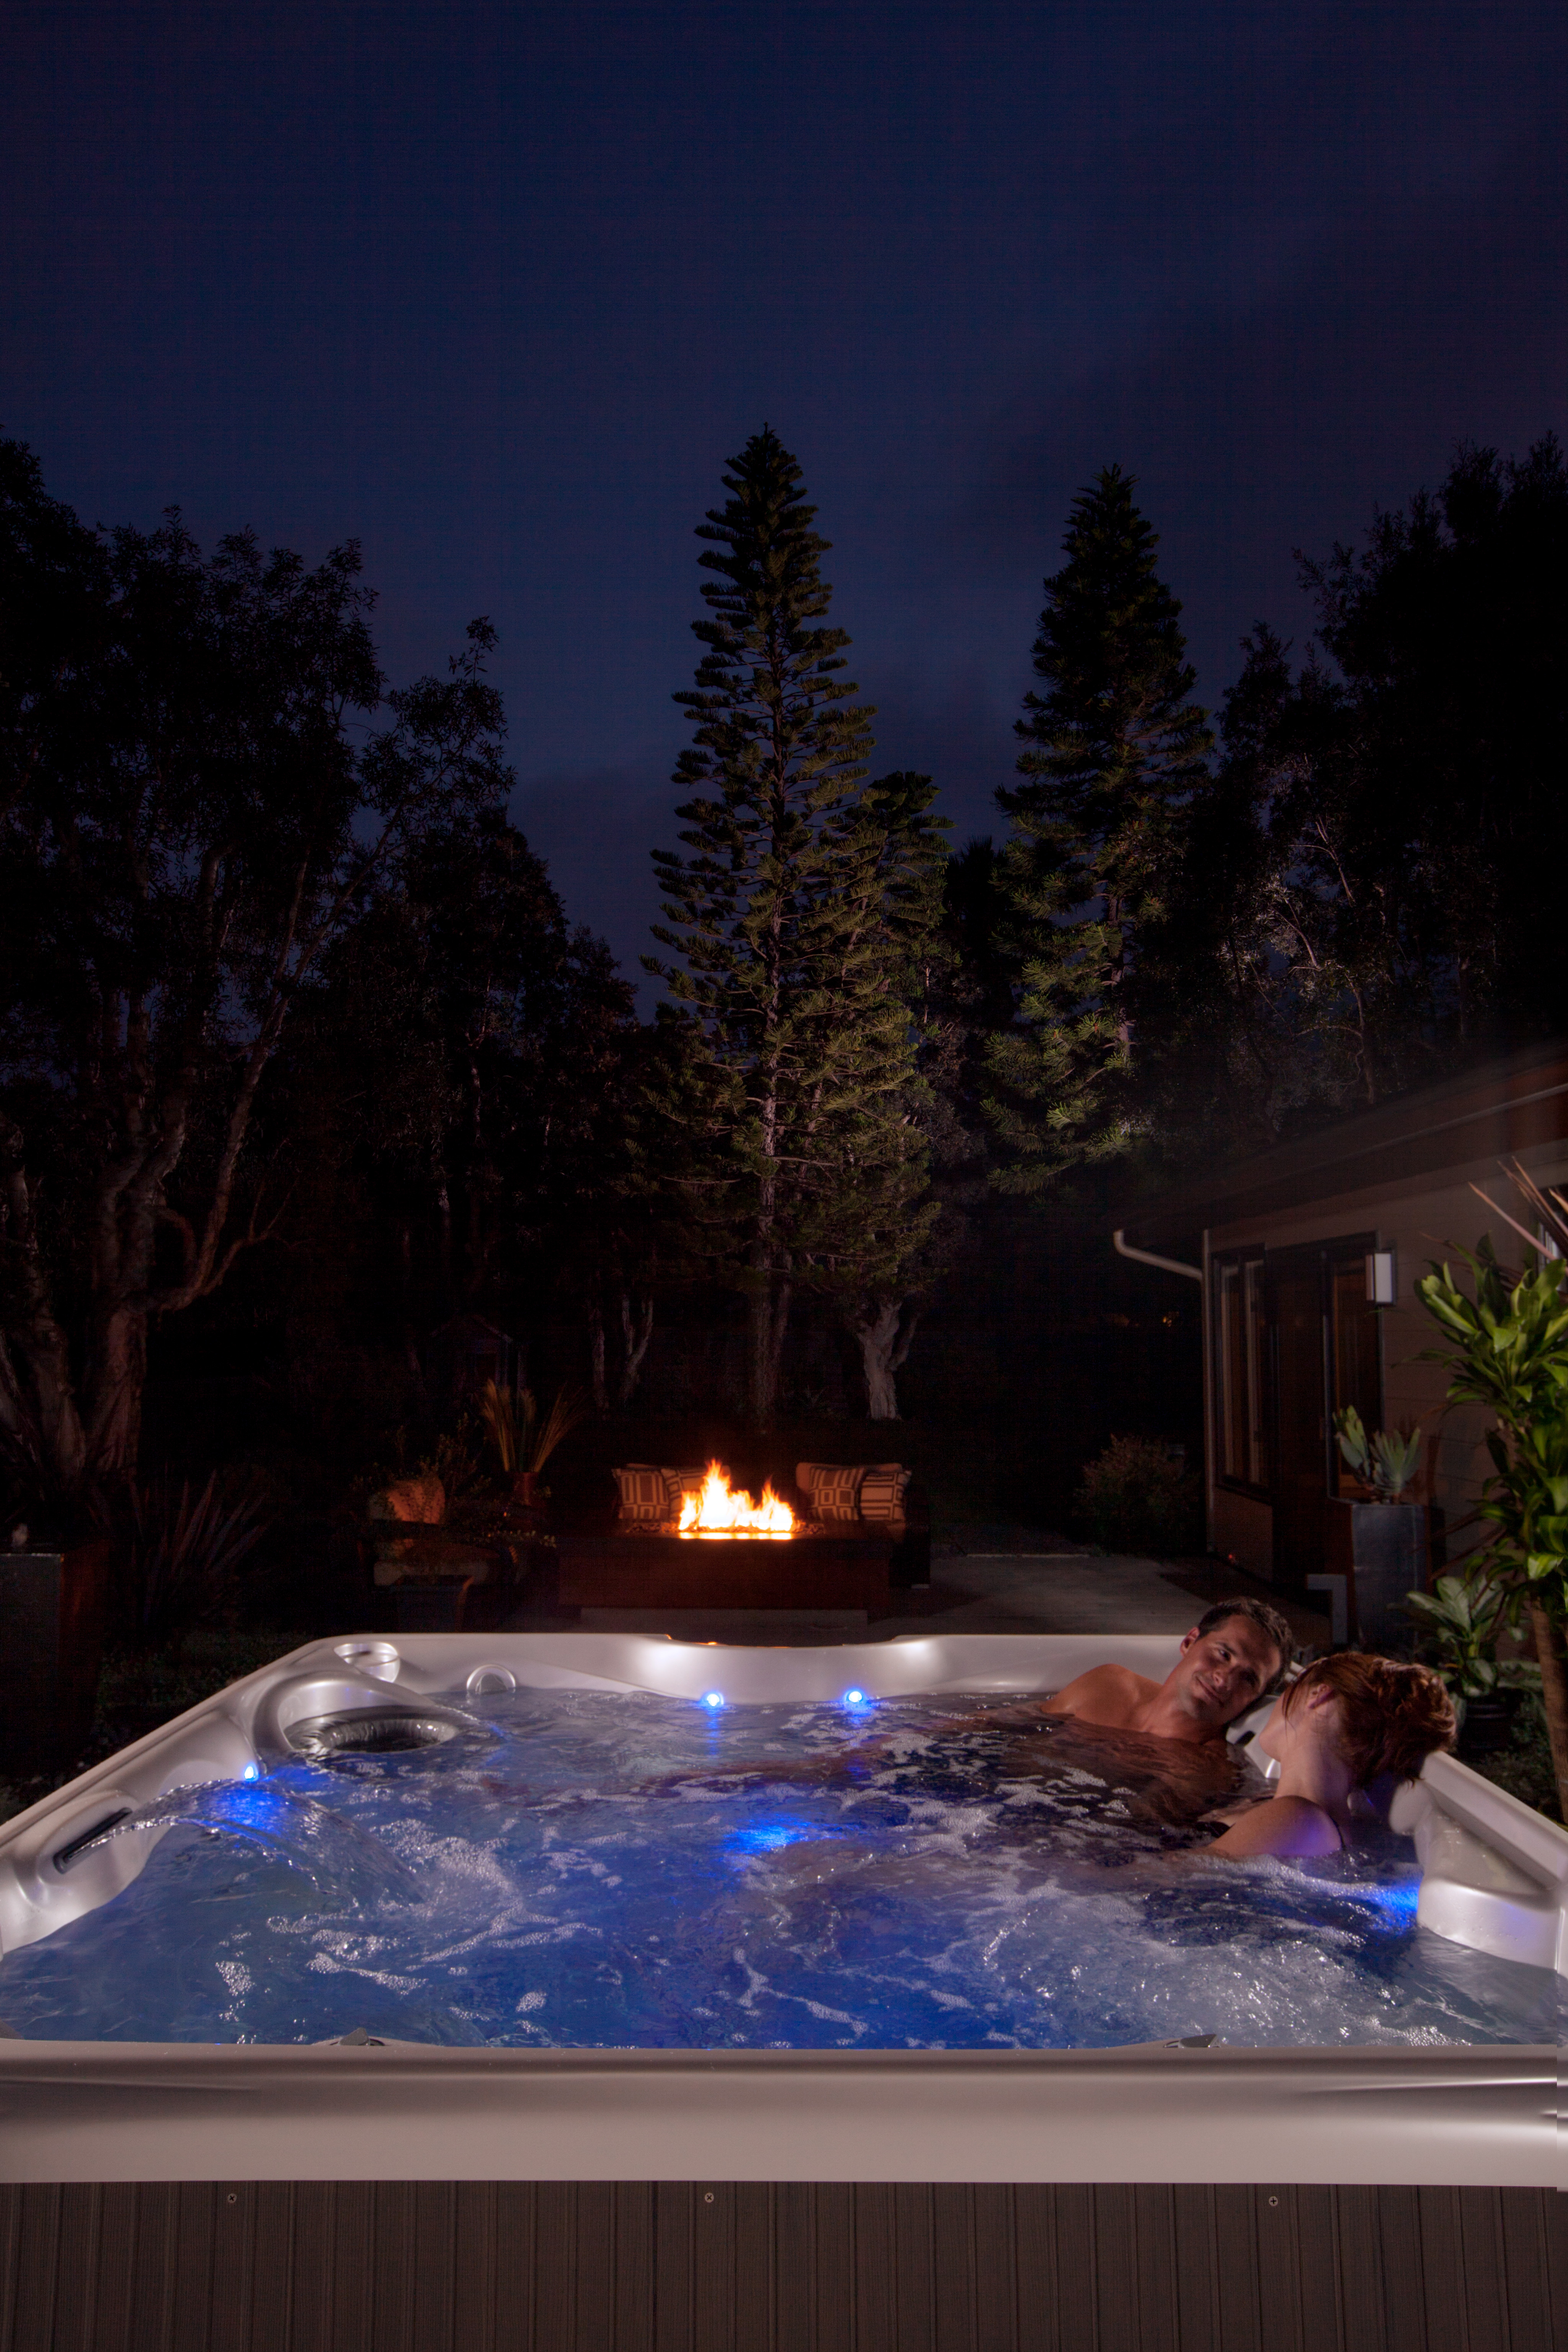 Looking to Take Date Night to the Next Level? Consider a Hot Tub!